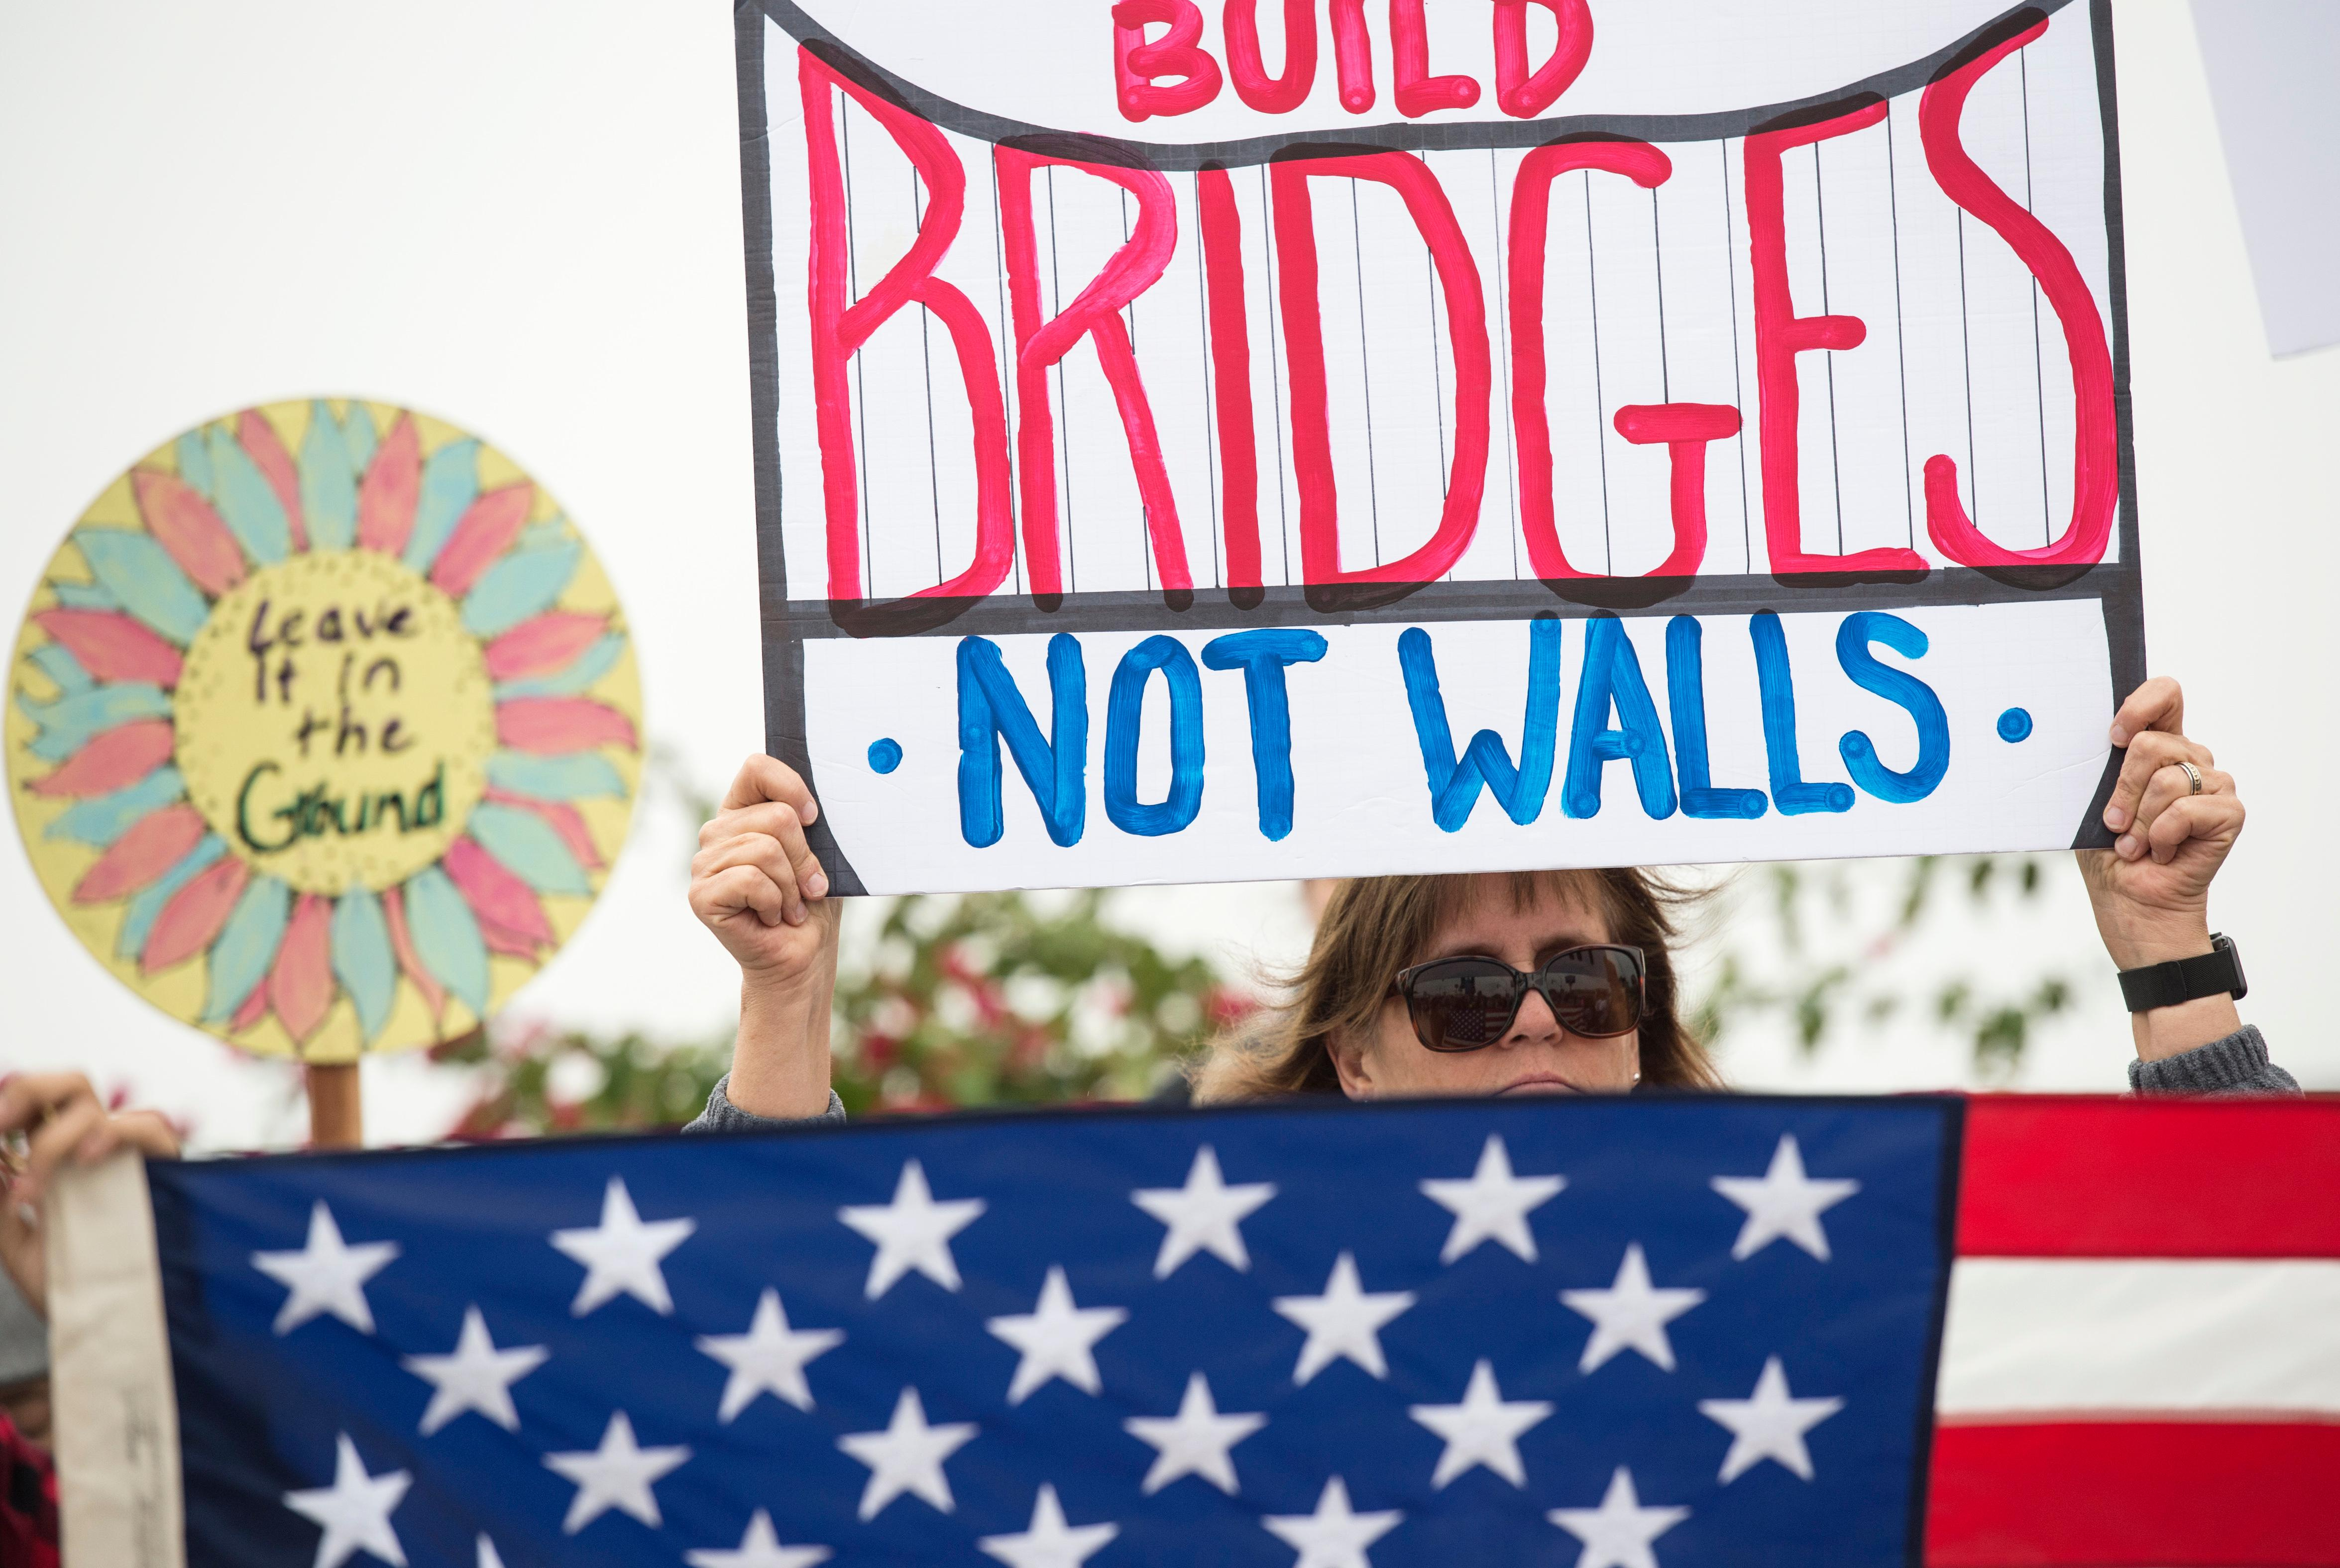 Lauren Rees holds up a sign during a rally against a upcoming scheduled visit by President Donald Trump Tuesday, March 13, 2018, in San Diego. (AP Photo/Kyusung Gong)